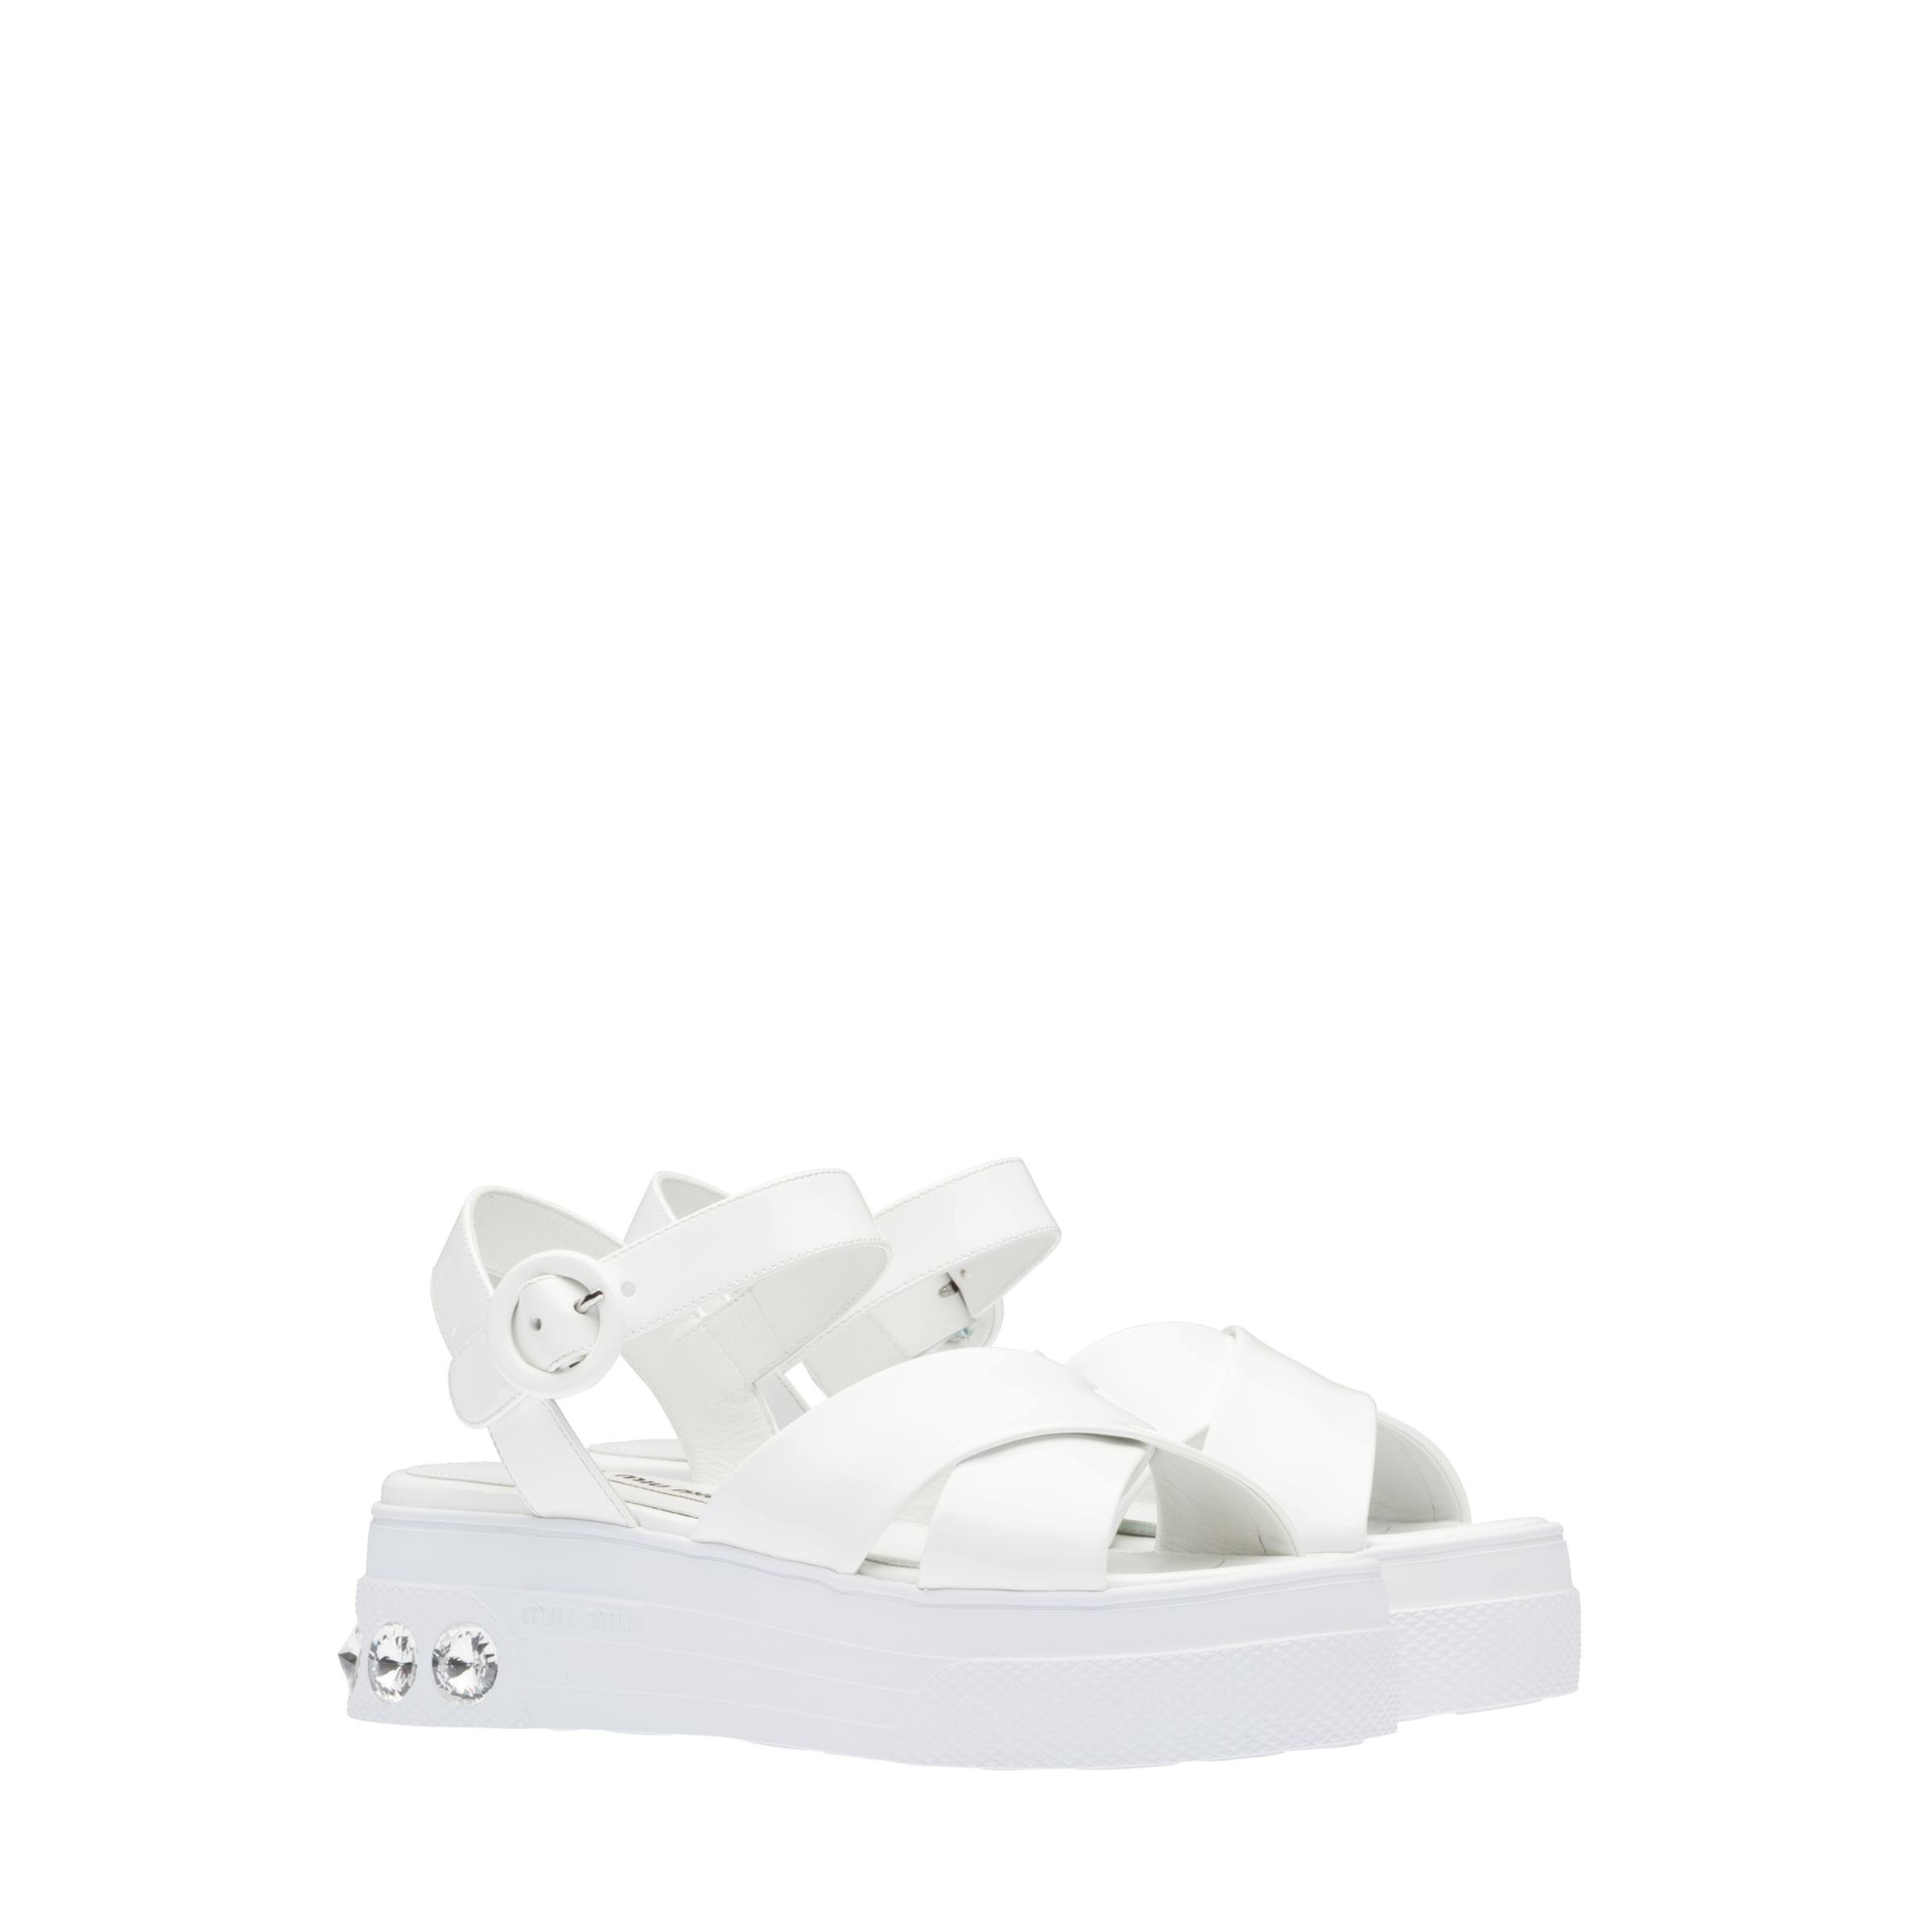 Patent Leather Sandals Women White